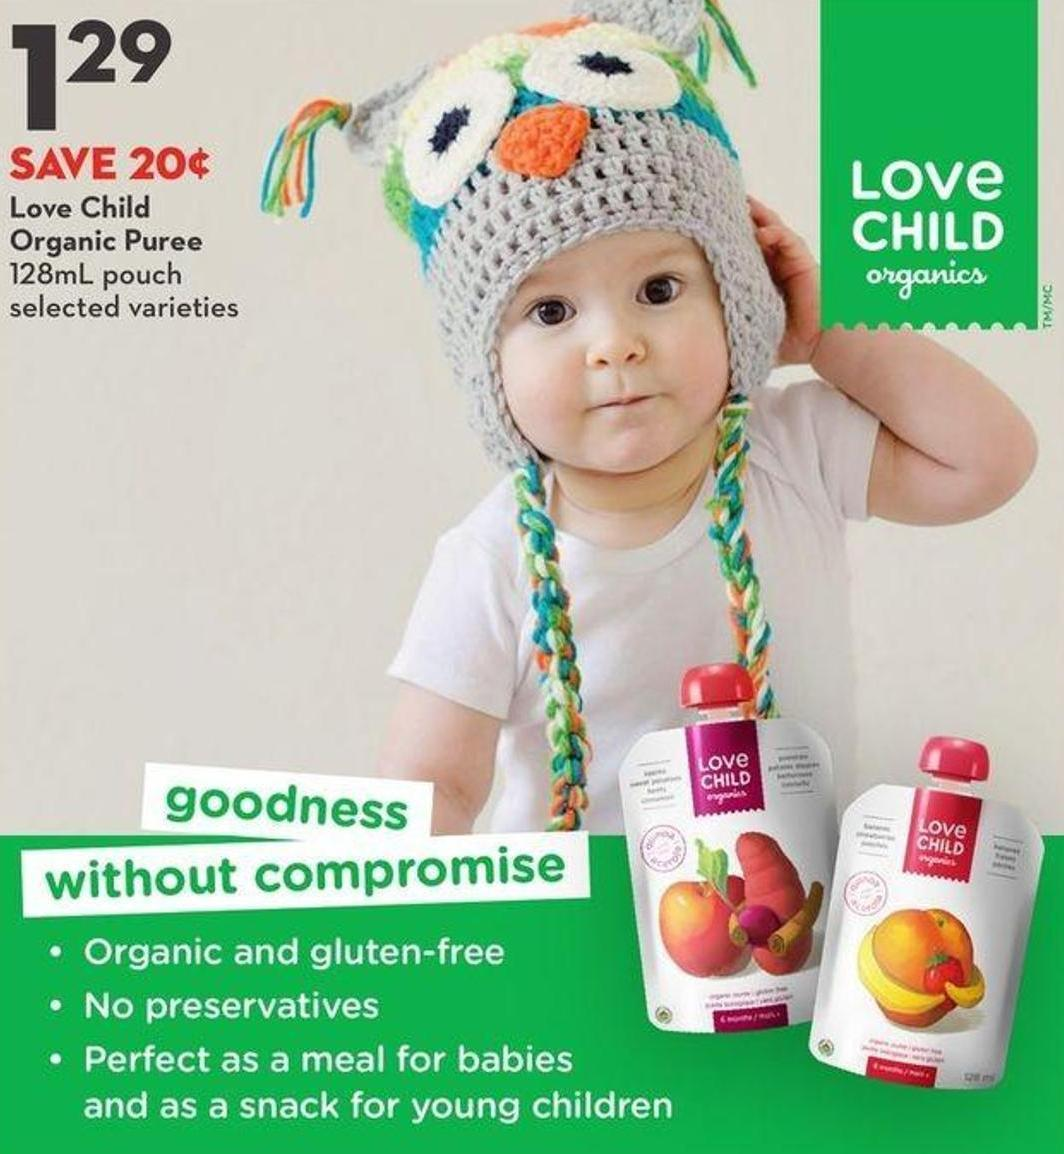 Love Child Organic Puree